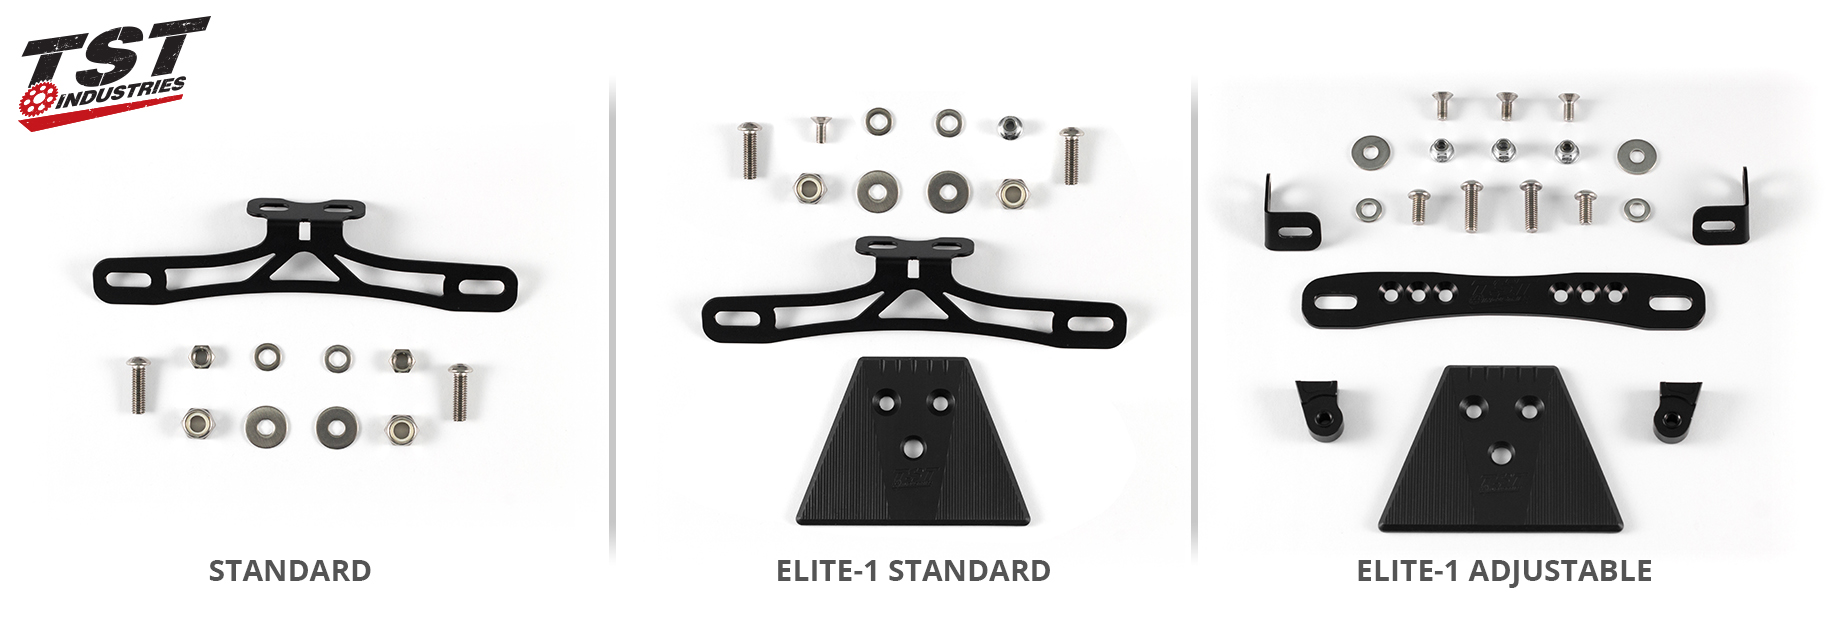 What's included in each TST Industries Kawasaki Ninja 400 Fender Eliminator kit.